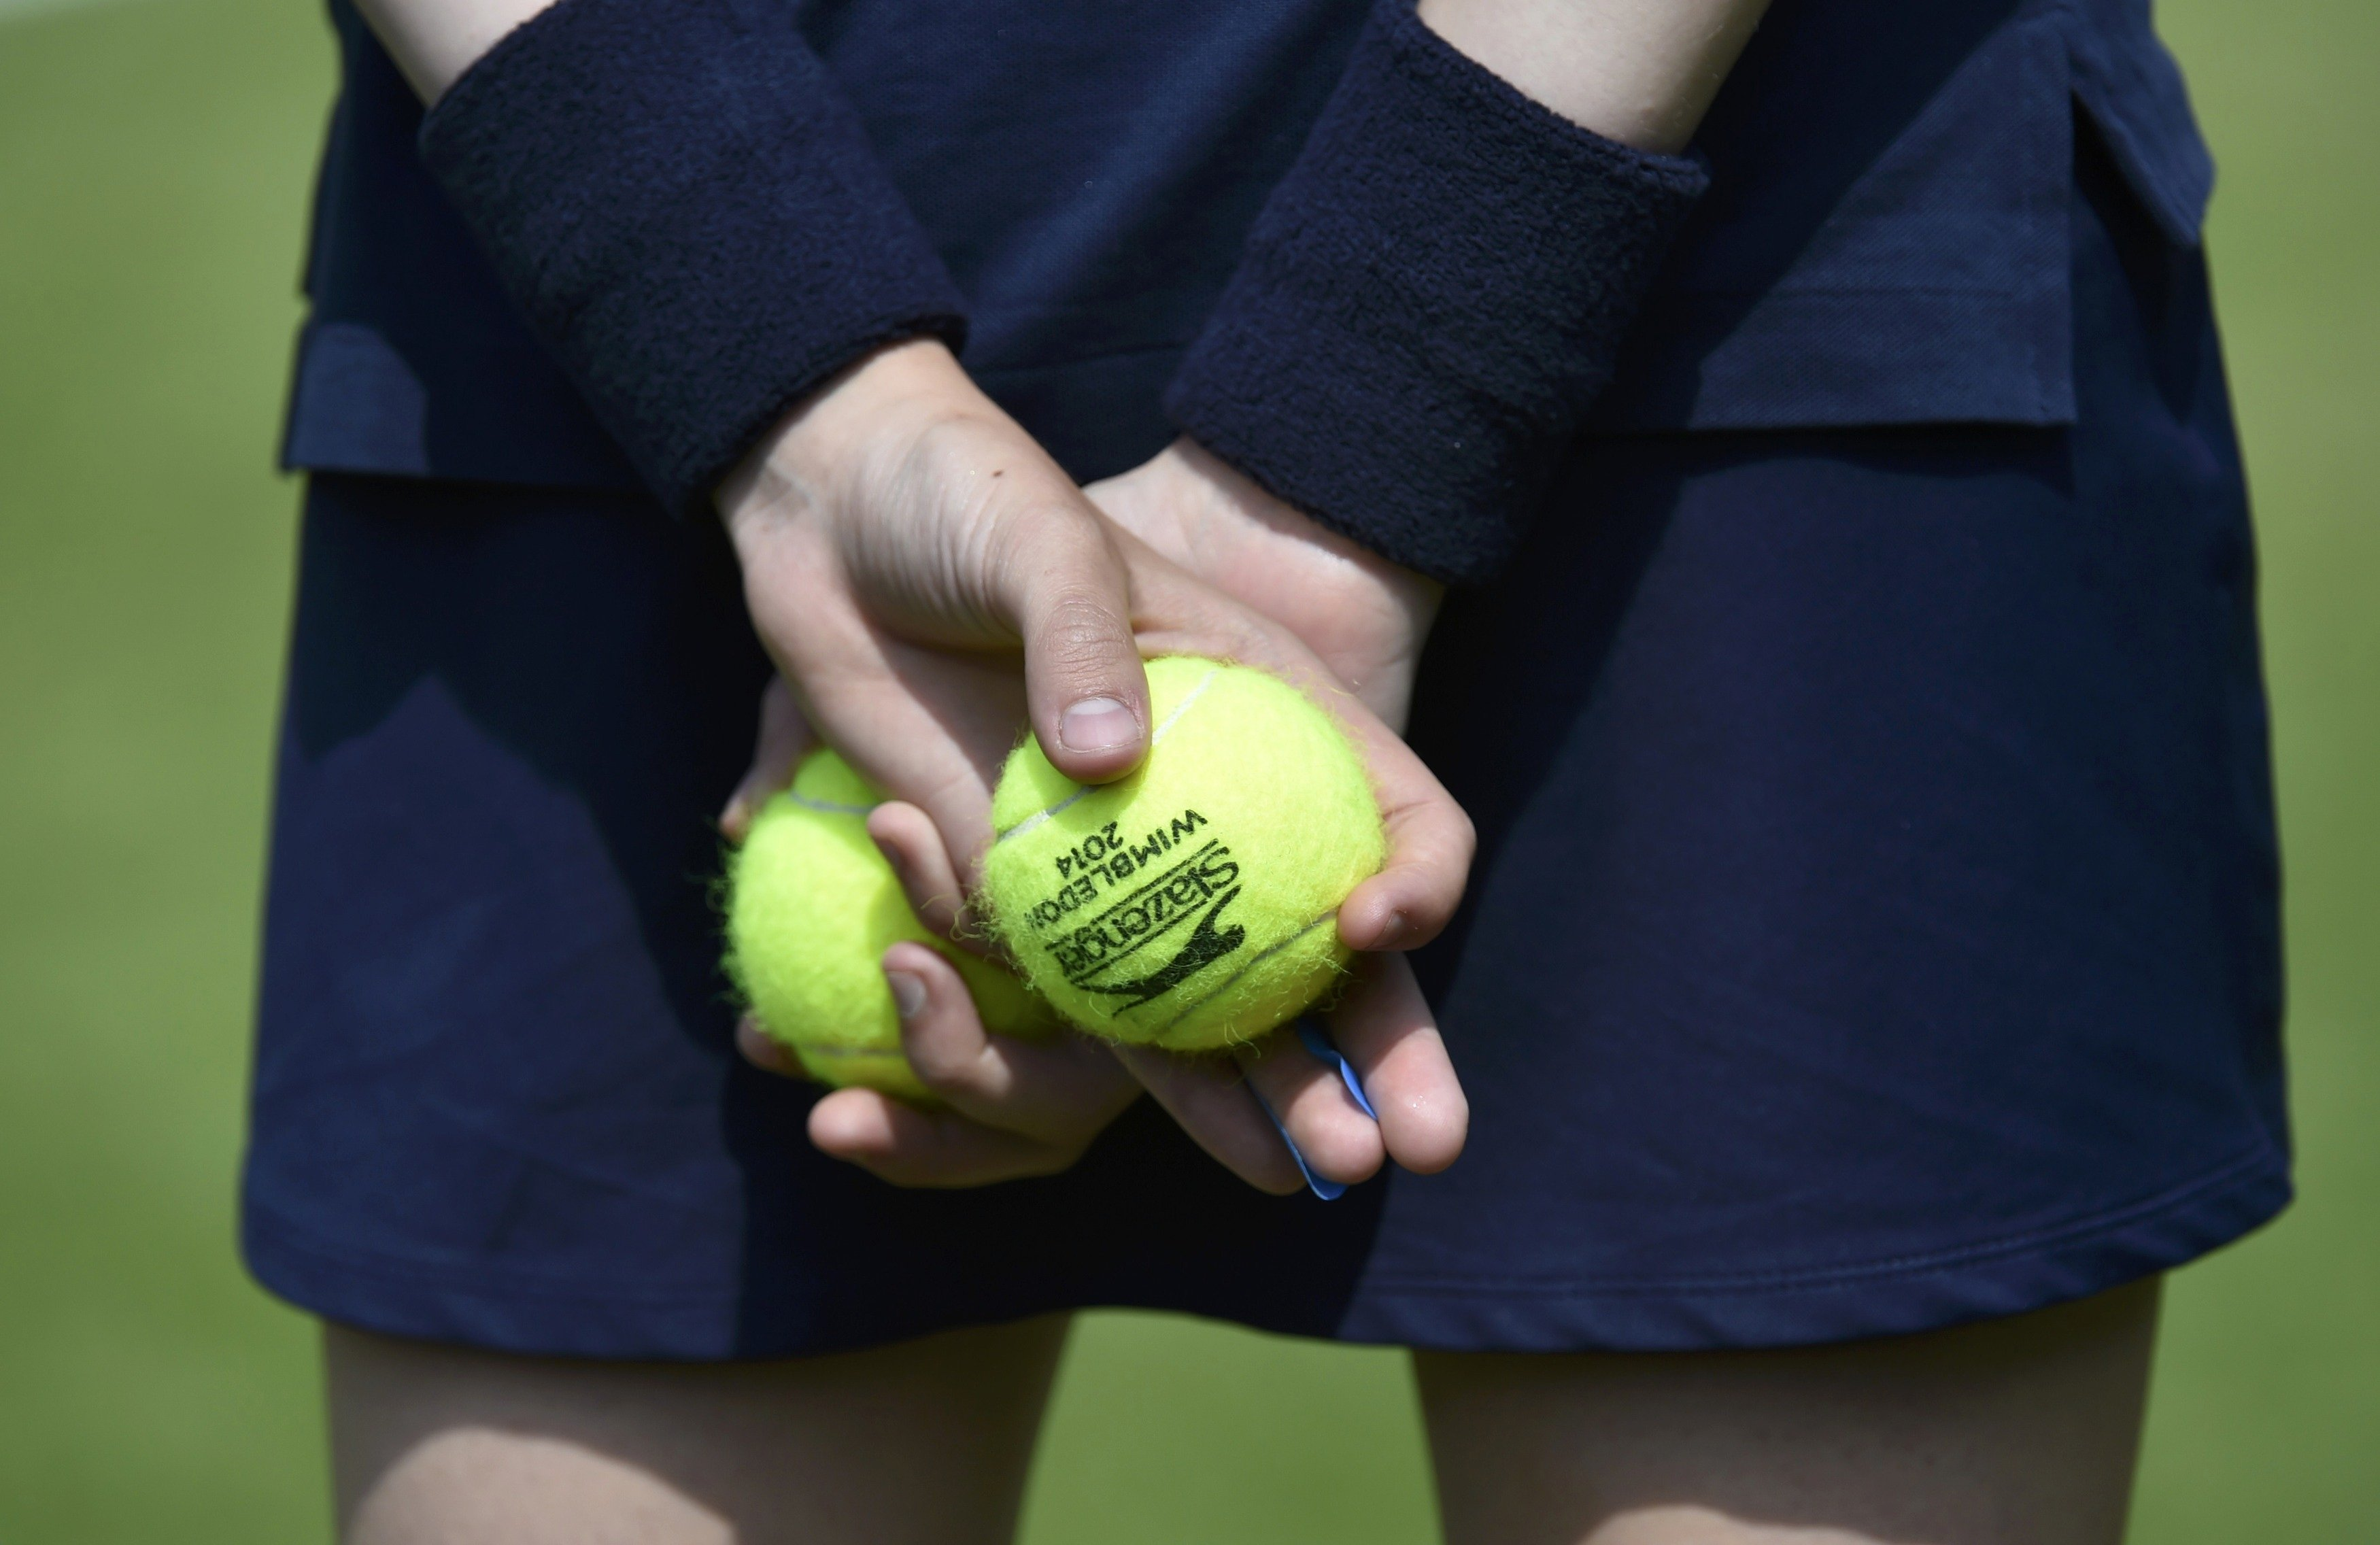 A ball-girl holds tennis balls at the Wimbledon Tennis Championships, in London on June 23, 2014.